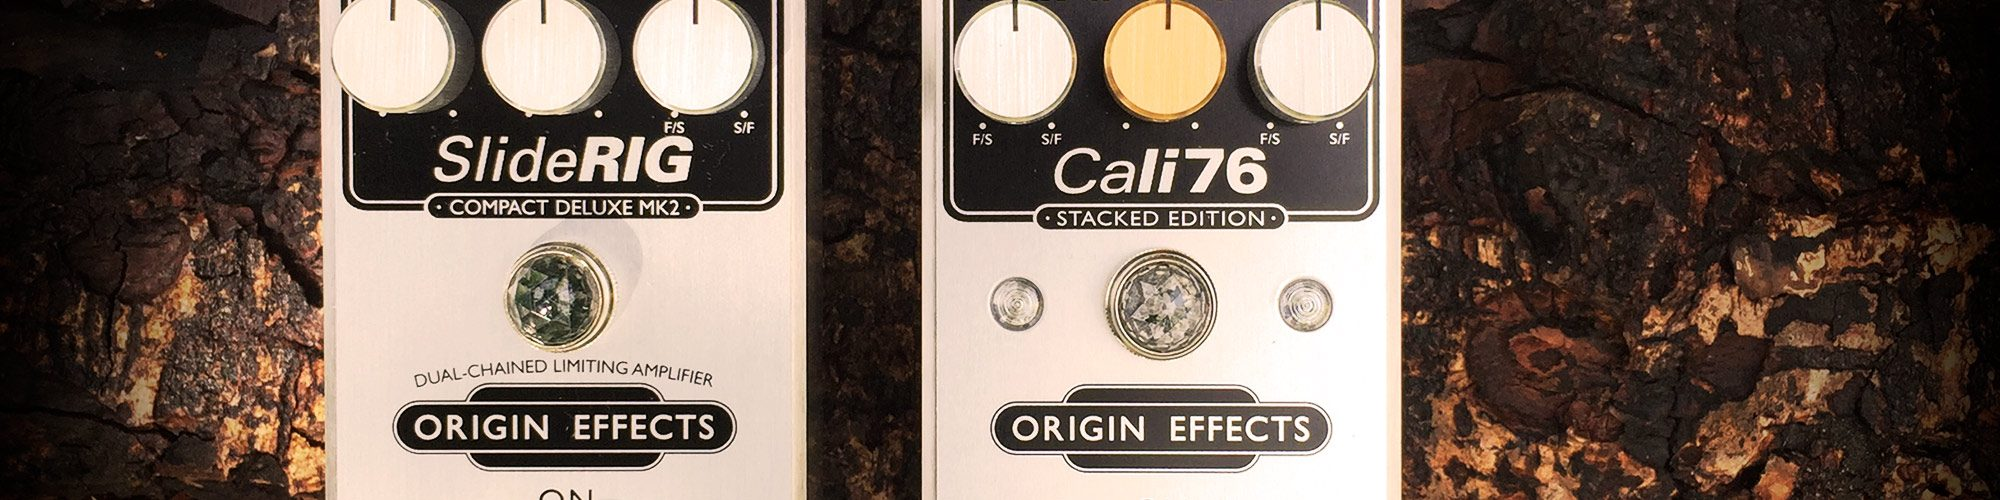 Origin Effects Cali76 Stacked Edition & Sliderig Deluxe MKII